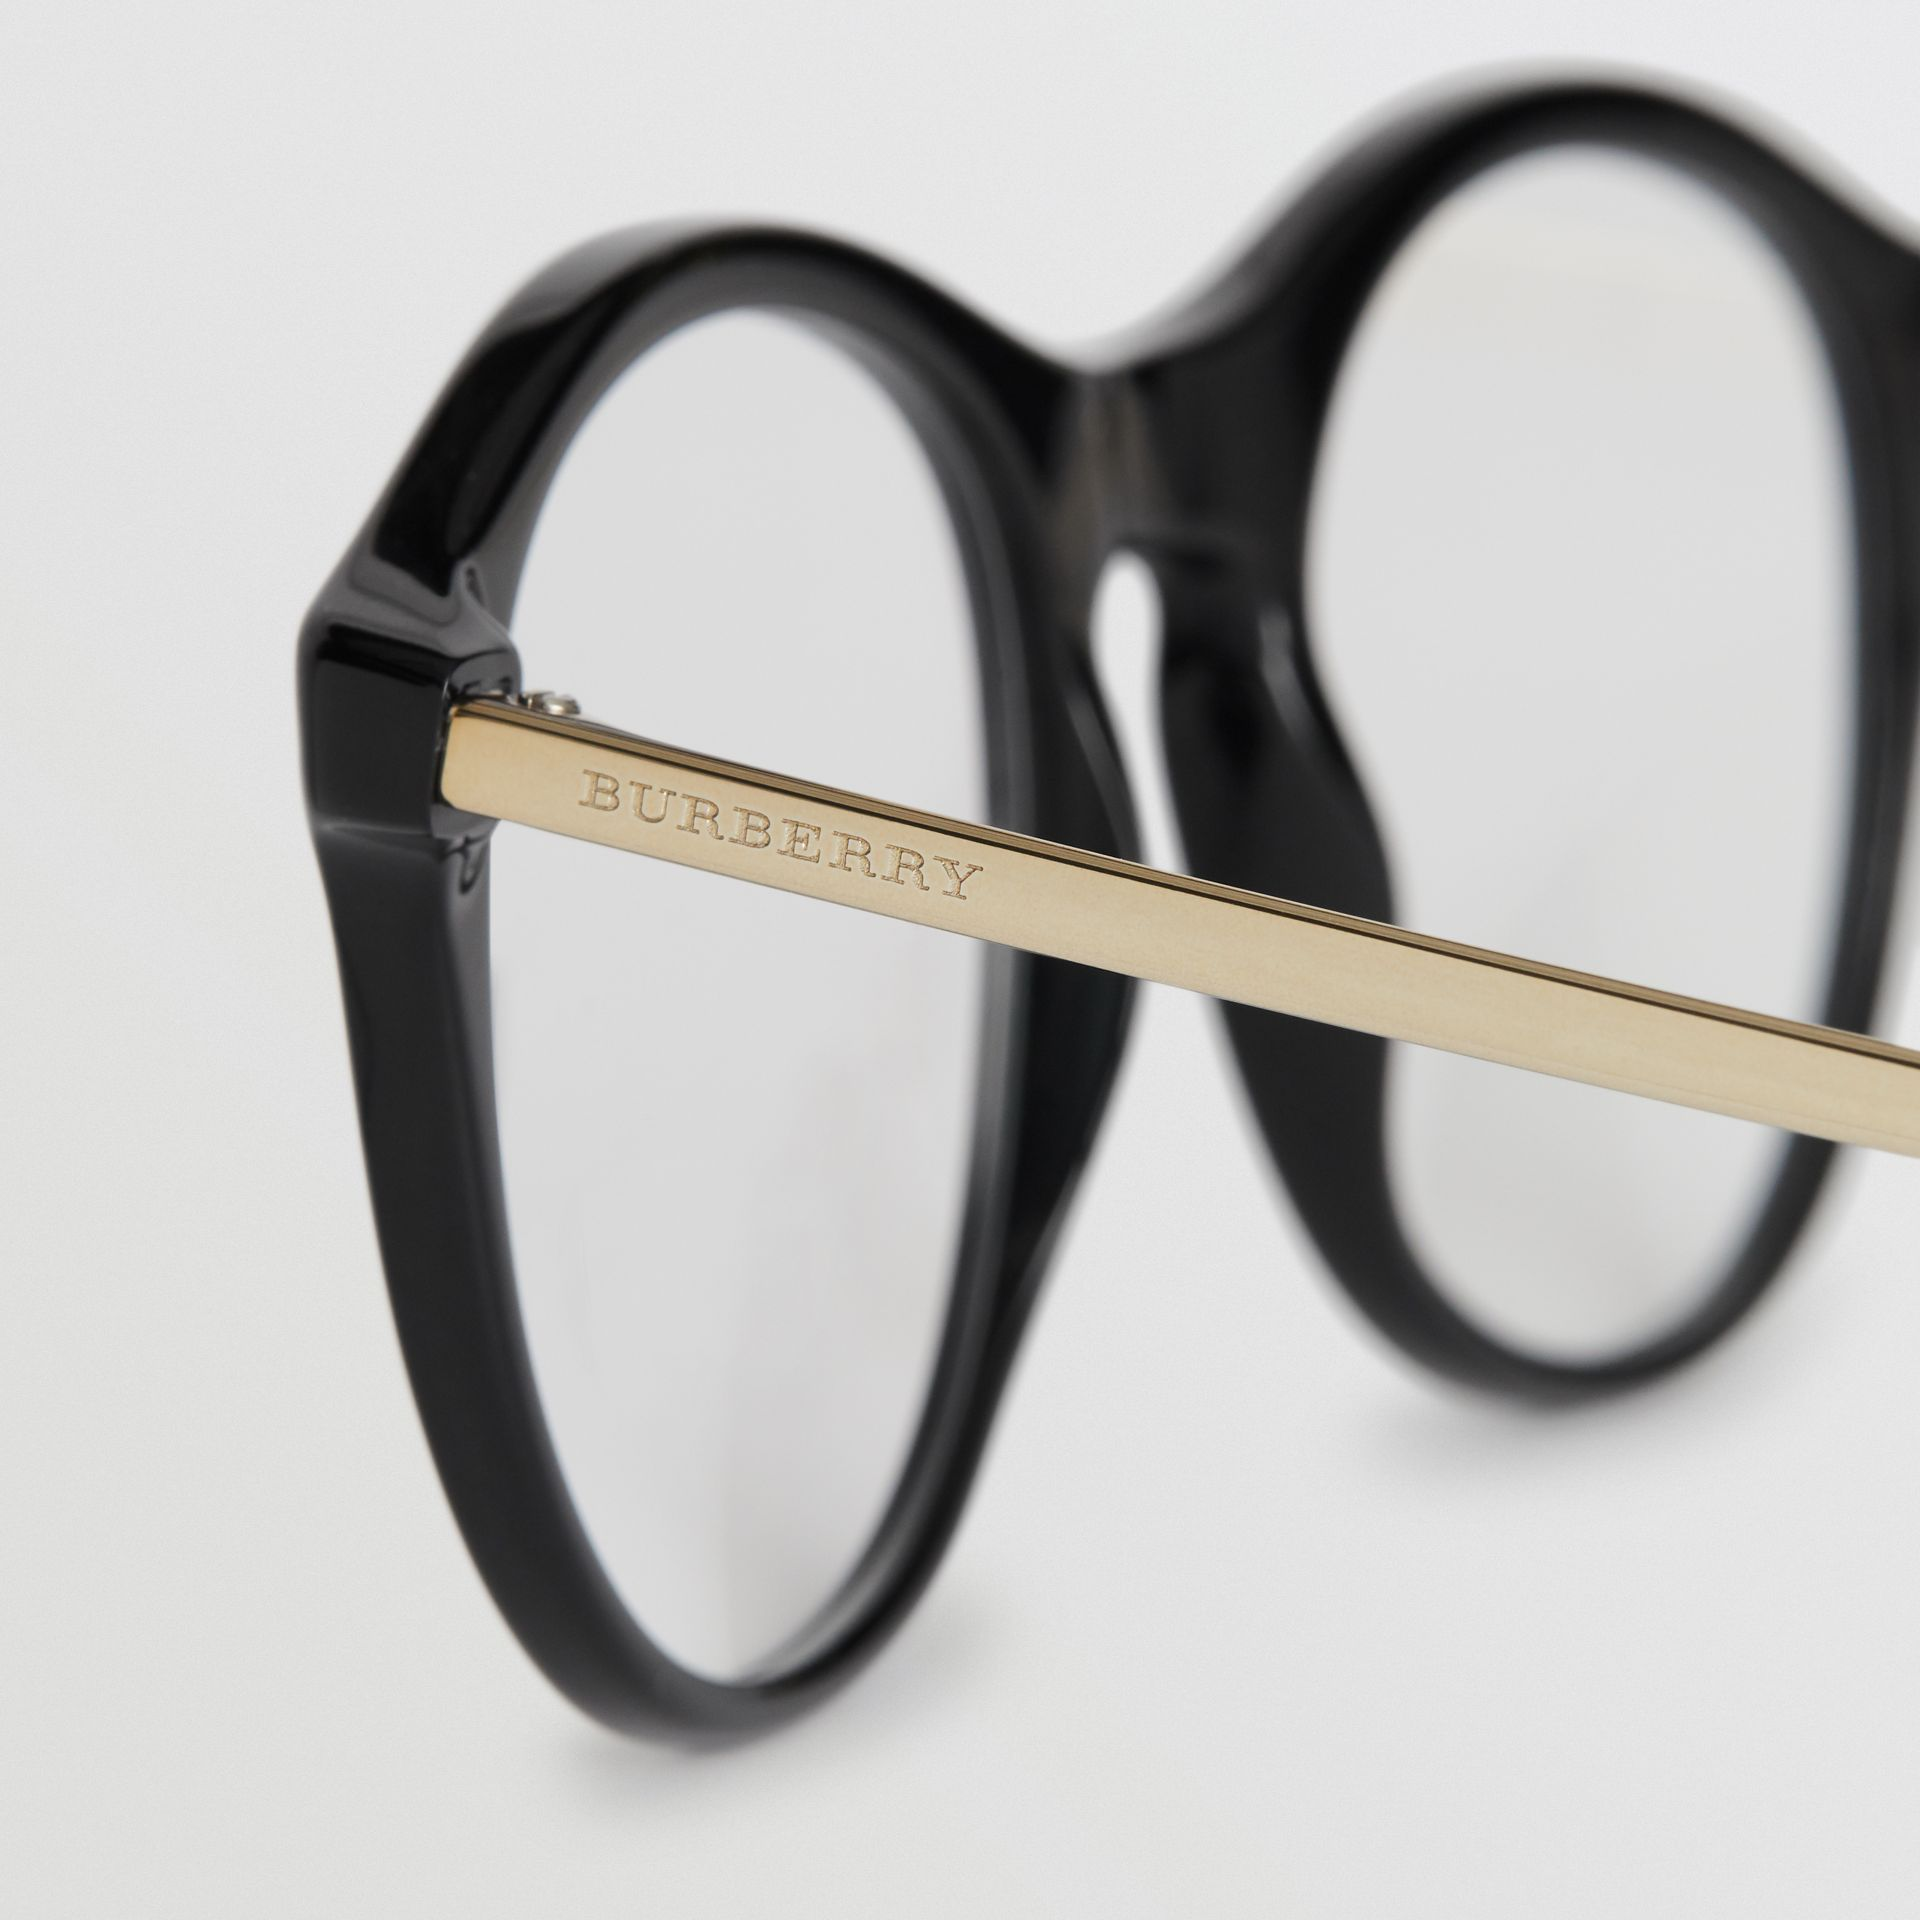 Vintage Check Detail Round Optical Frames in Black - Women | Burberry Australia - gallery image 1